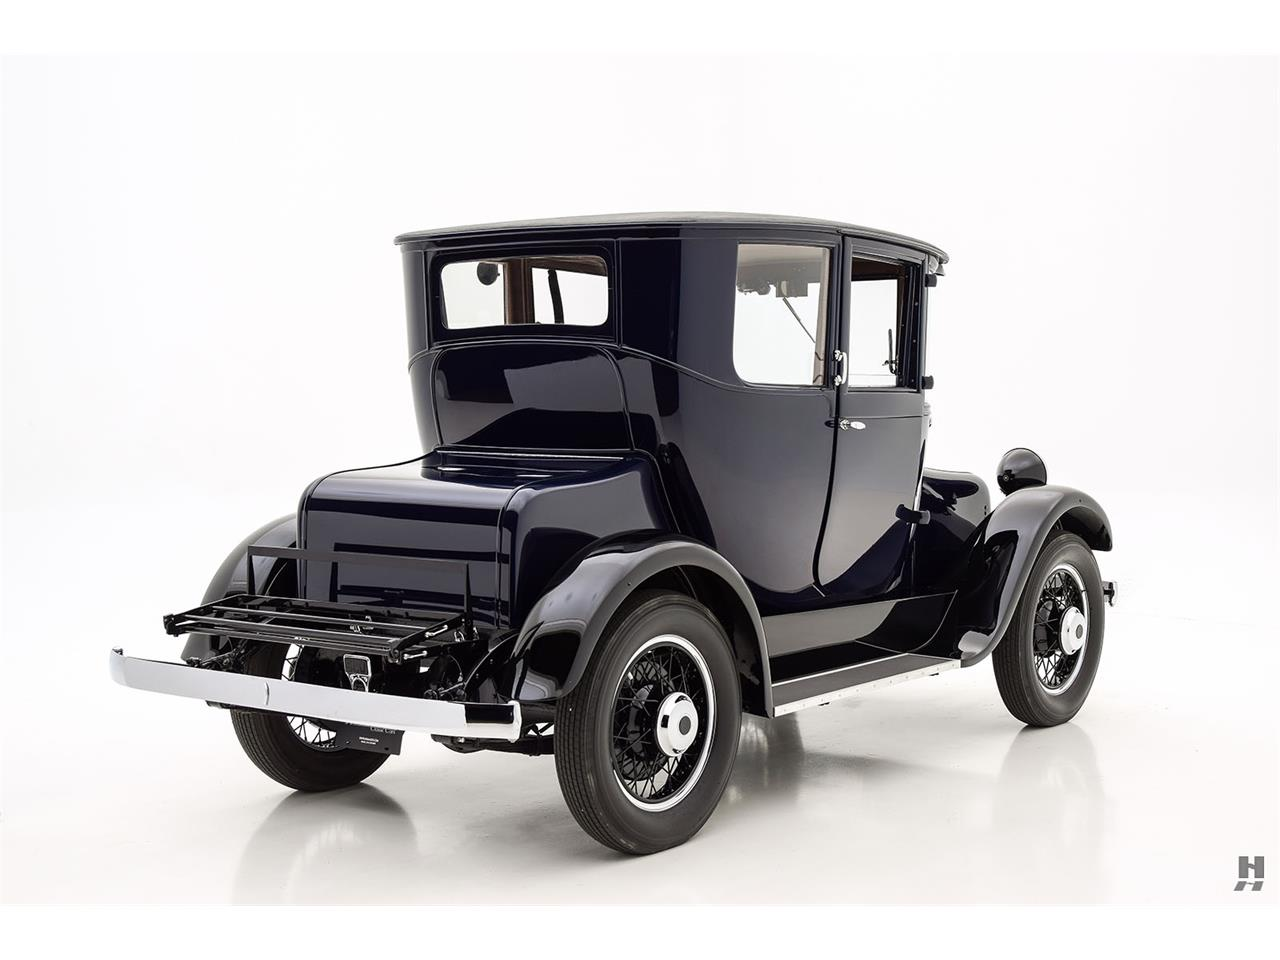 Large Picture of '31 Detroit Electric Model 97 - $99,500.00 Offered by Hyman Ltd. Classic Cars - L0G2